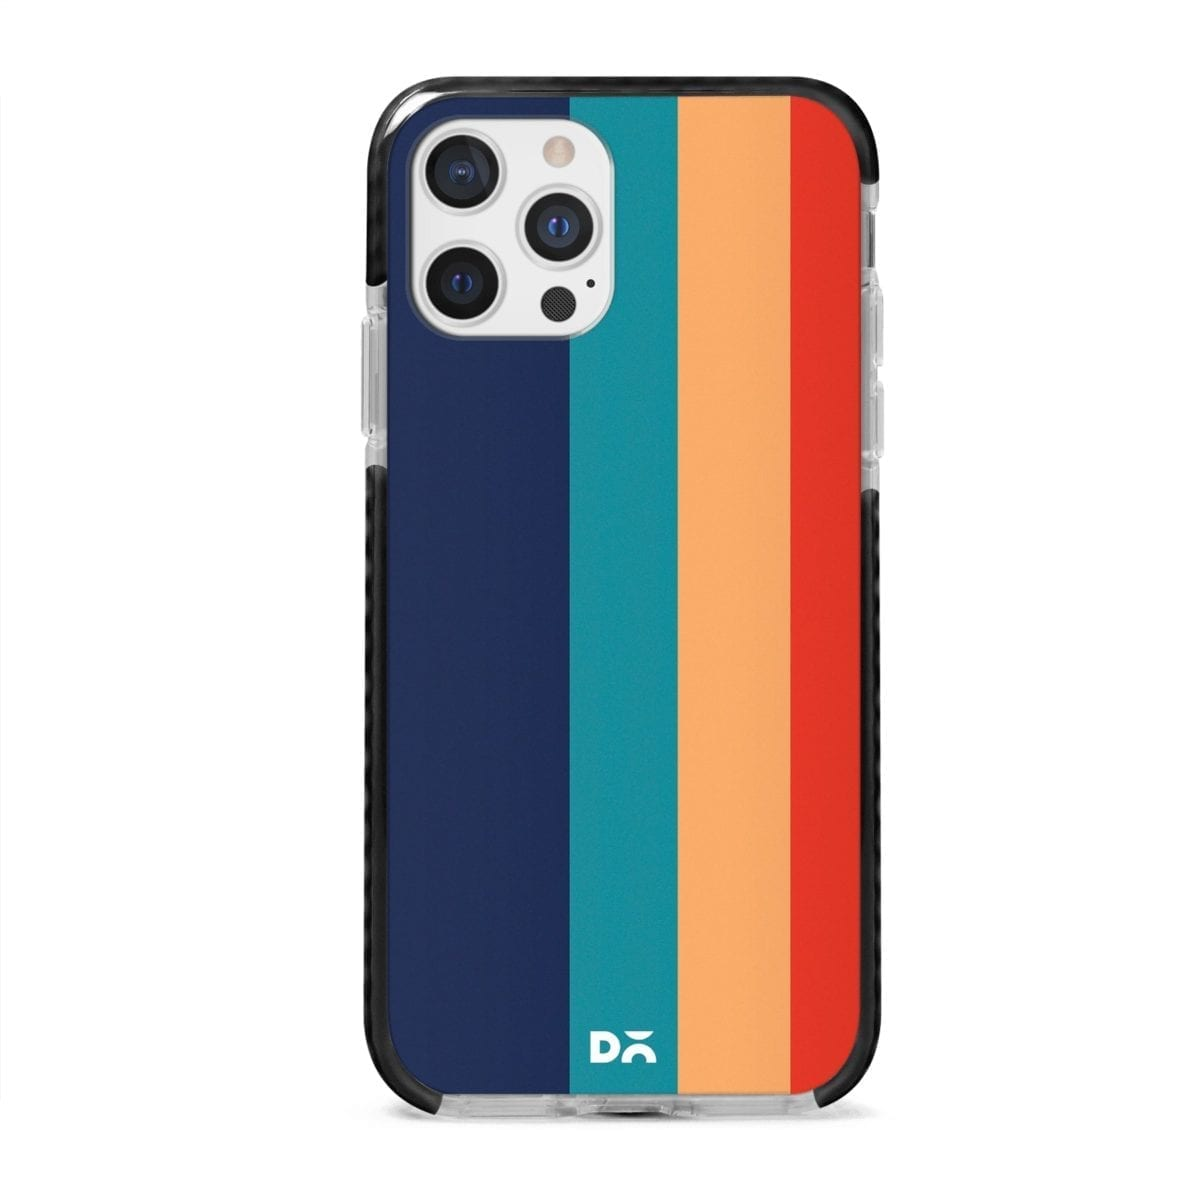 Blue Vertical Lines Stride Case Cover for Apple iPhone 12 Pro and Apple iPhone 12 Pro Max with great design and shock proof   Klippik   Online Shopping   Kuwait UAE Saudi